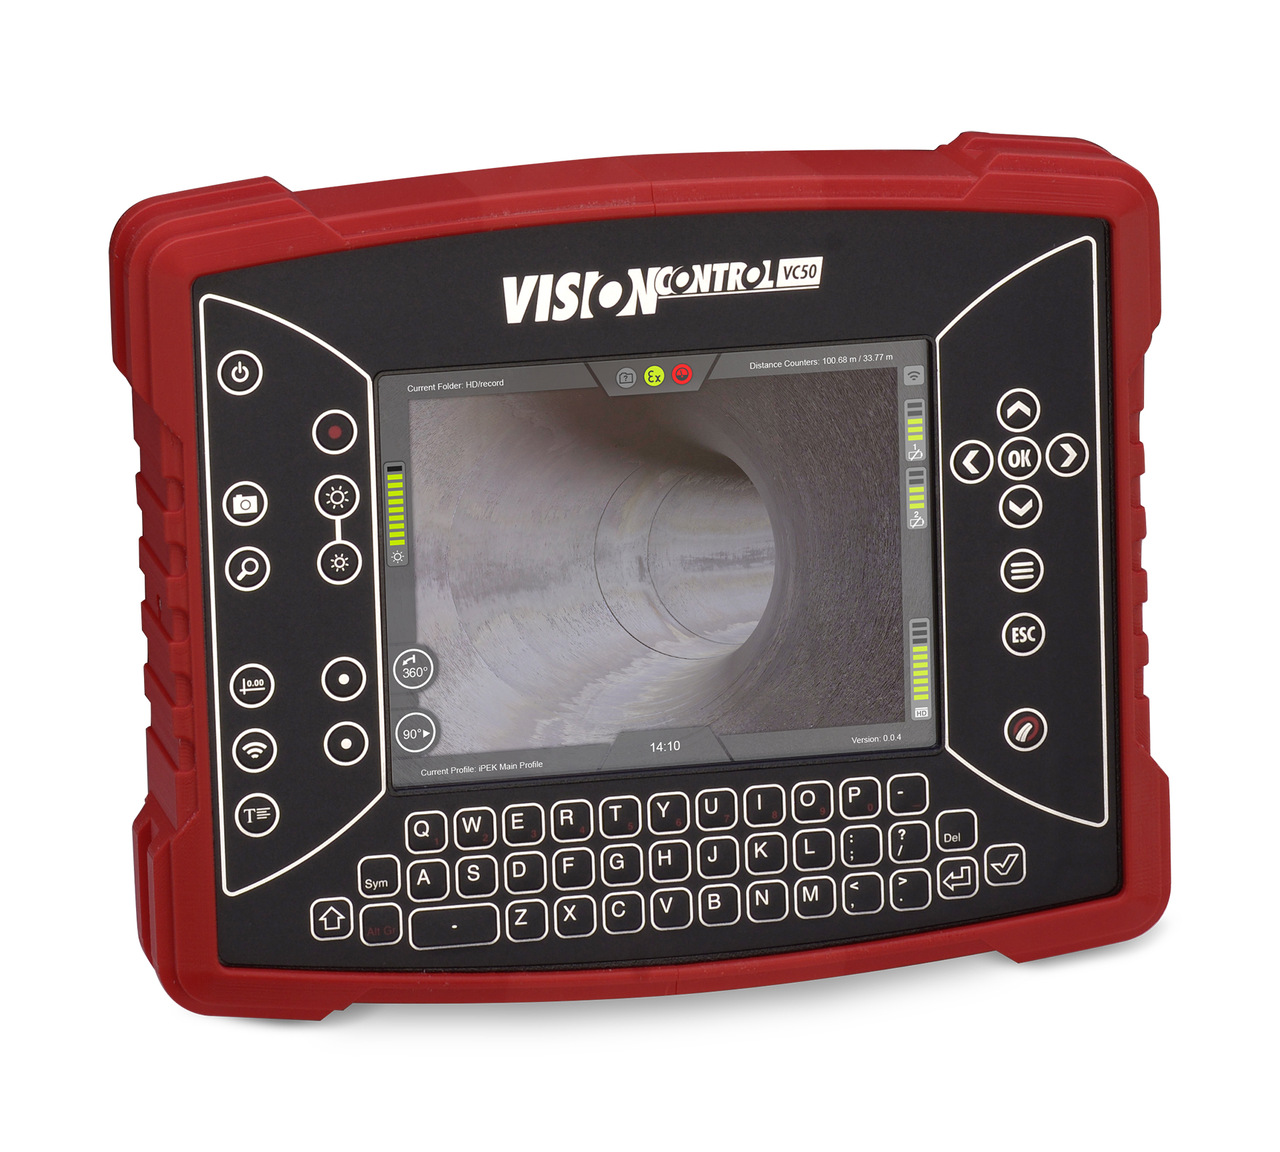 VC50 Mobile Control Panel for use with Agilios 9011 push camera